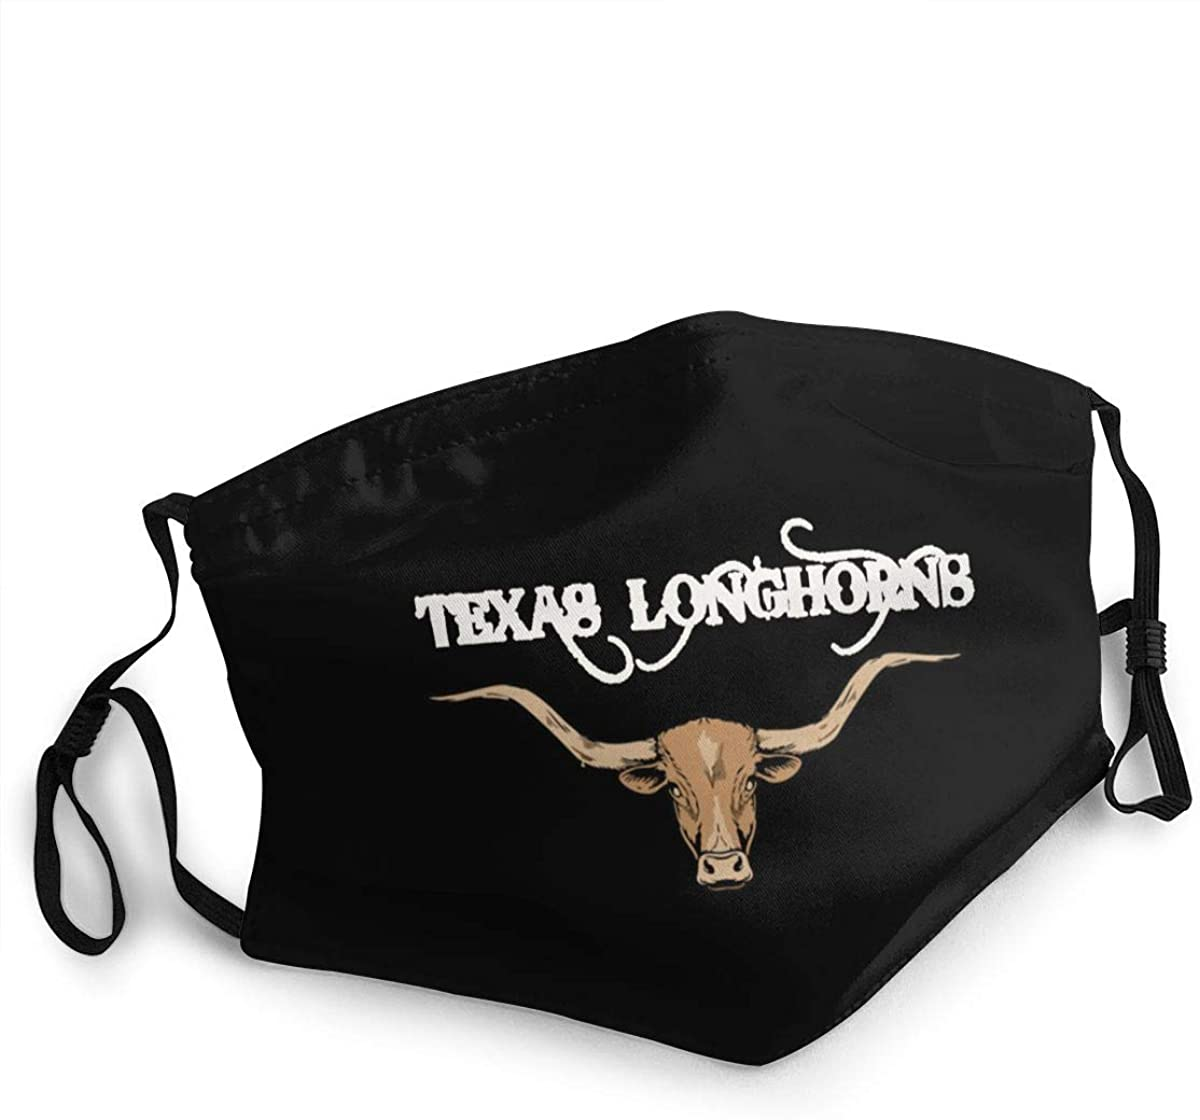 Texas Longhorns Design Art for Texasoutdoor Mask, Protective 5-Layer Activated Carbon Adult Men and Women Headscarf